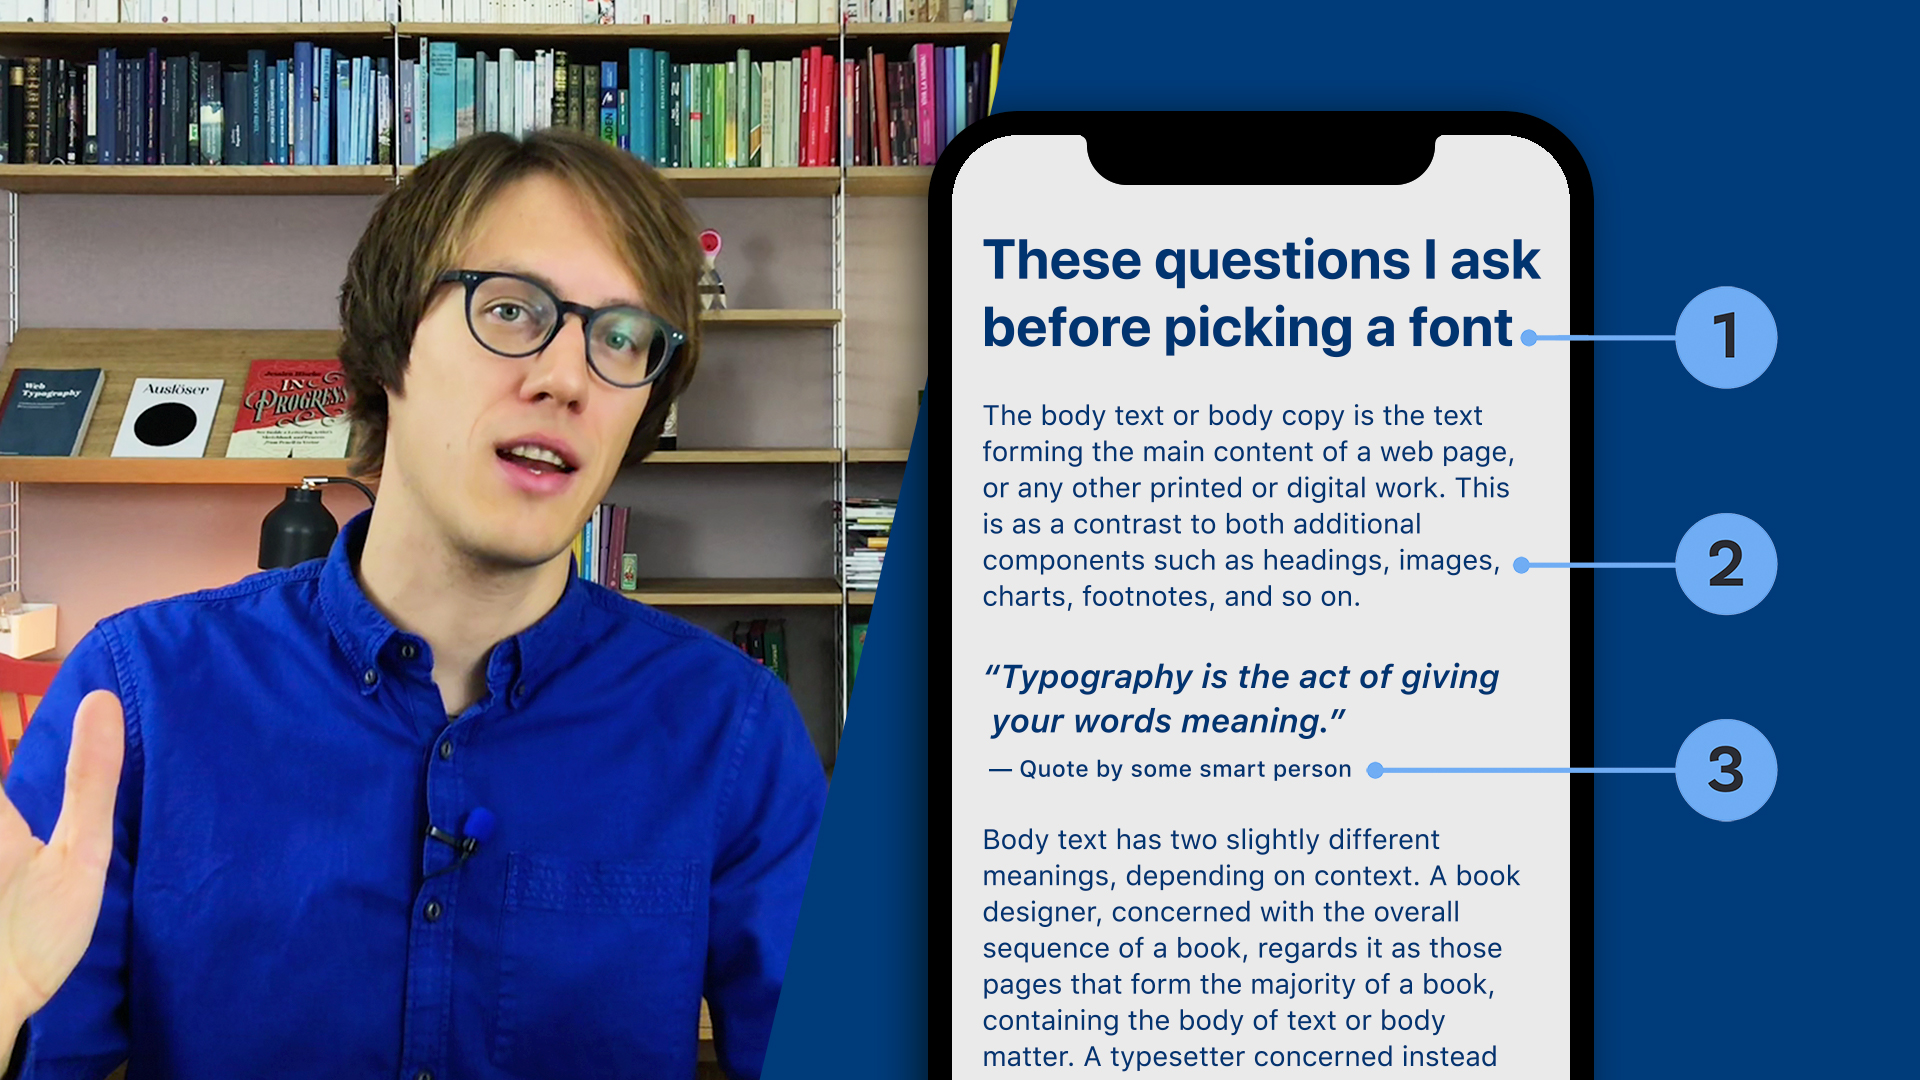 The different types of text – These questions I ask before picking a font